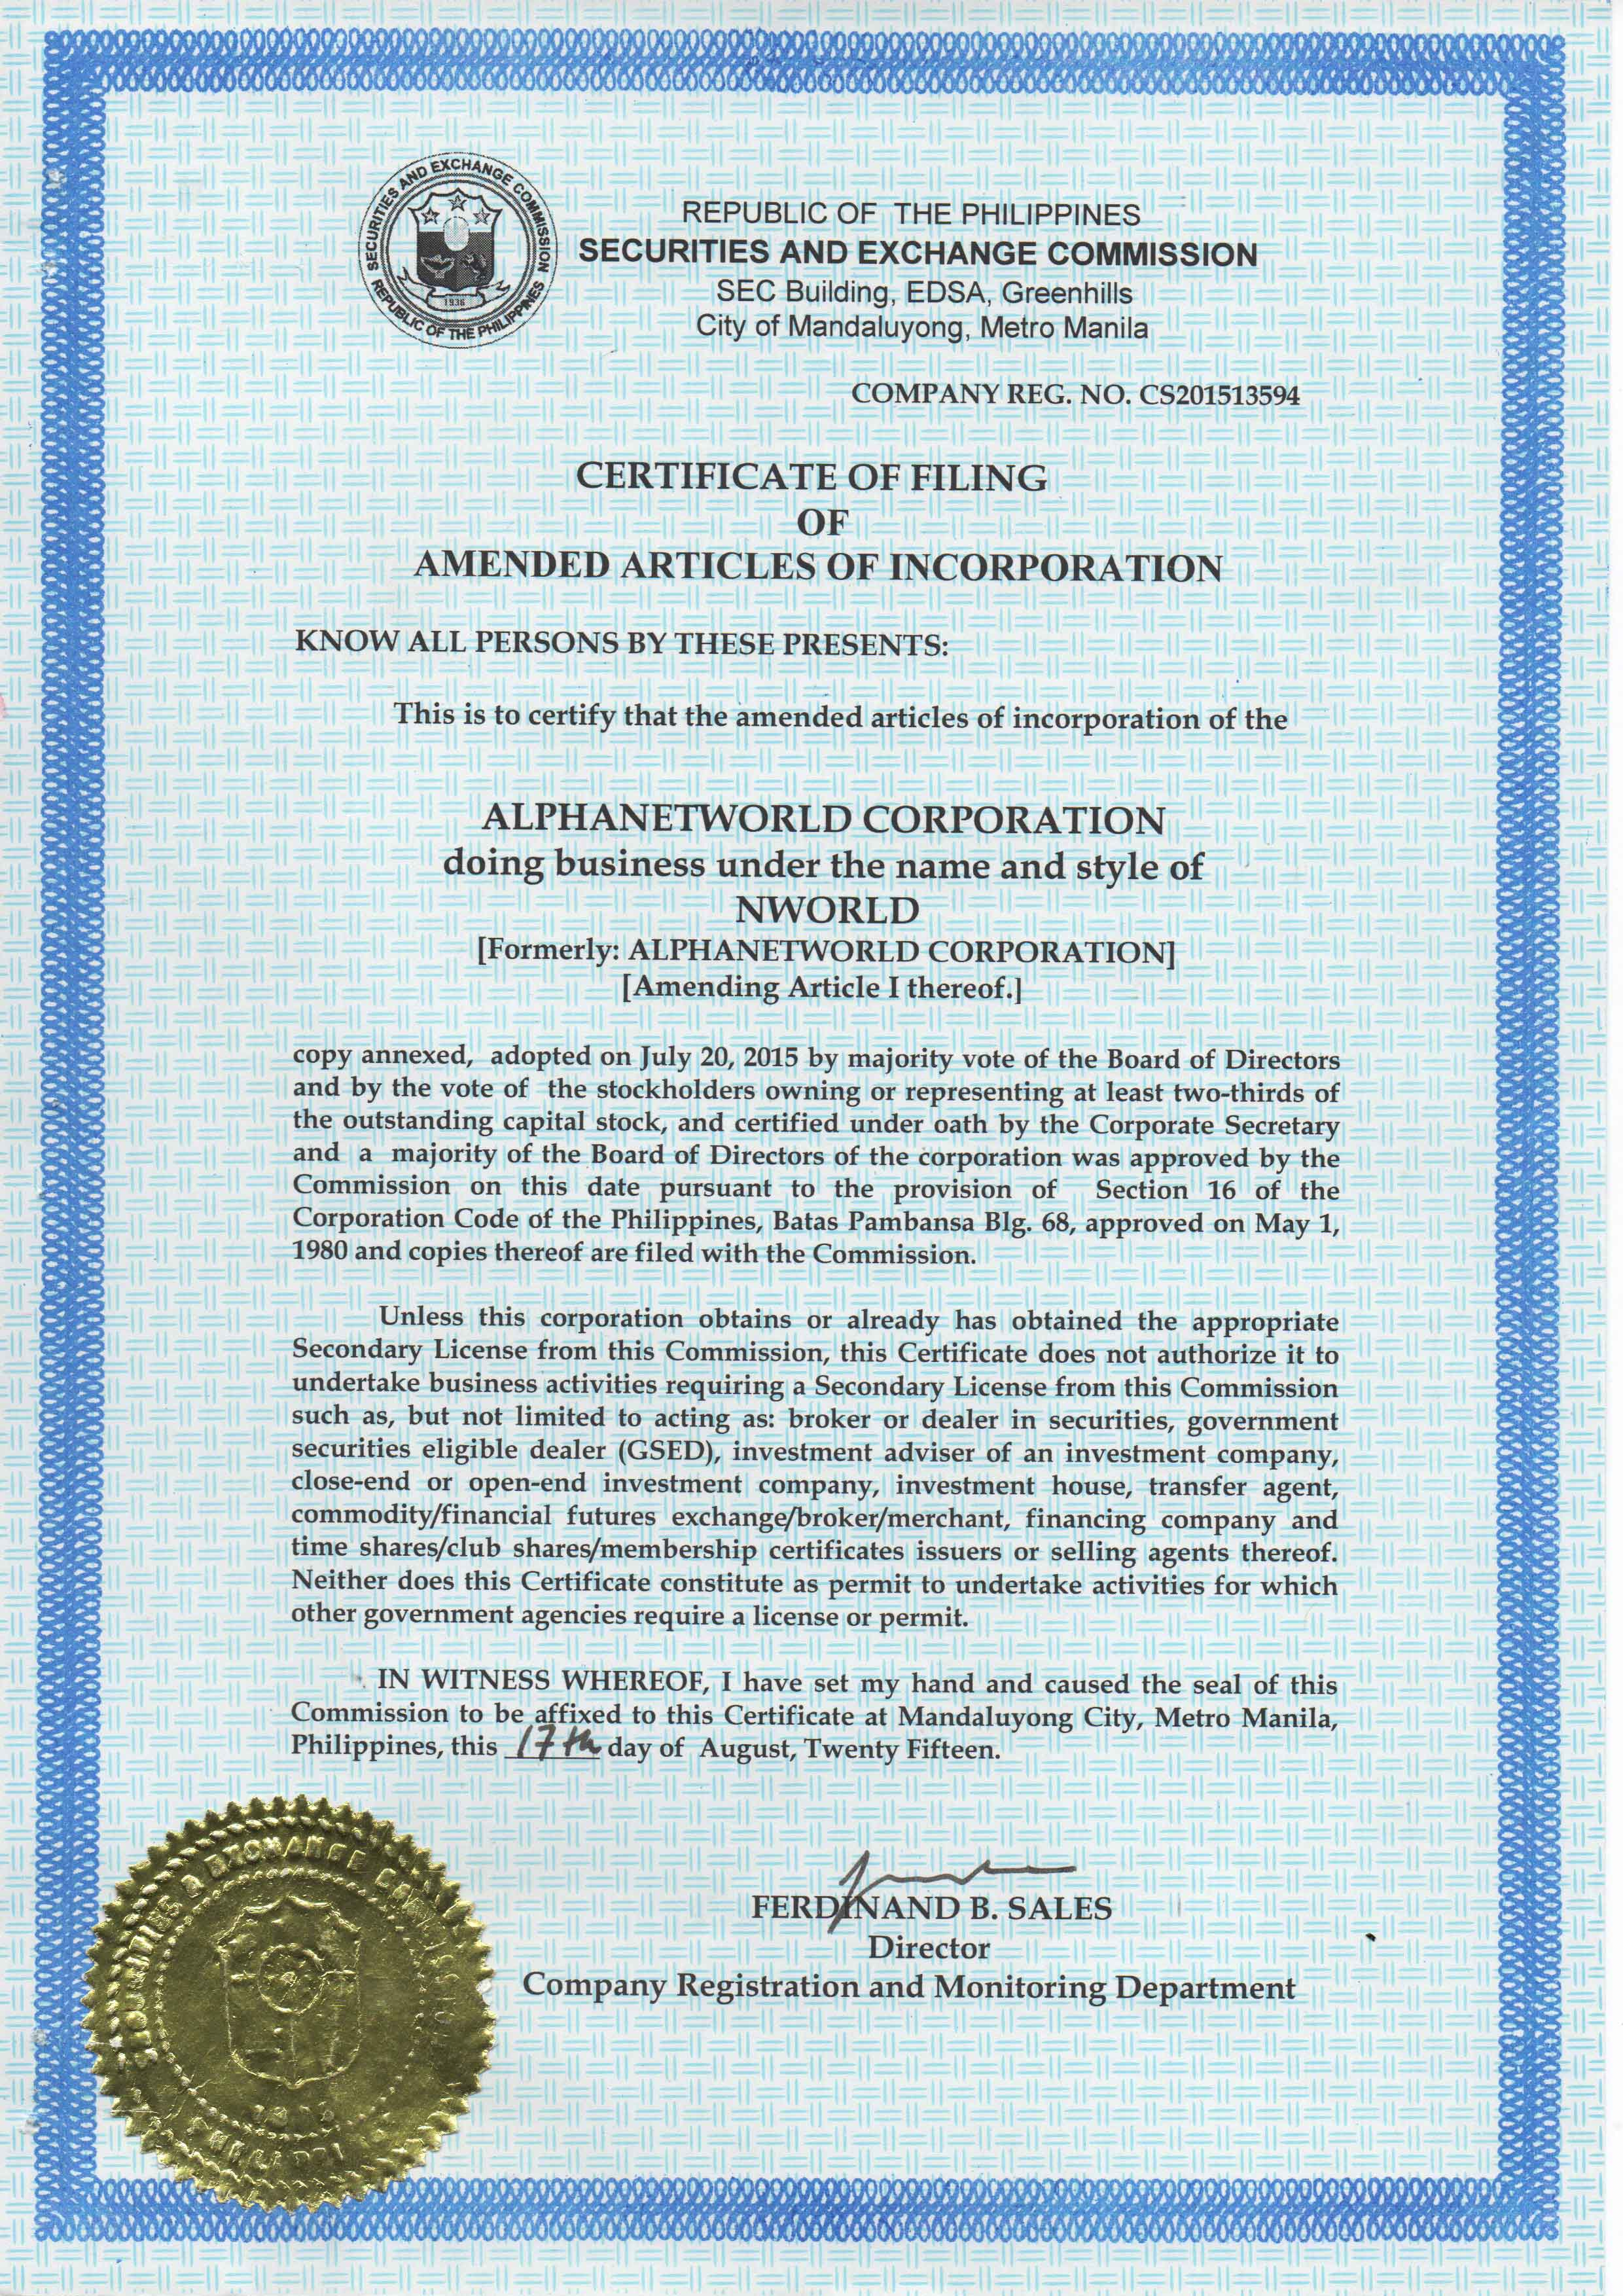 NWORLD CERTIFICATE OF INCORPORATION